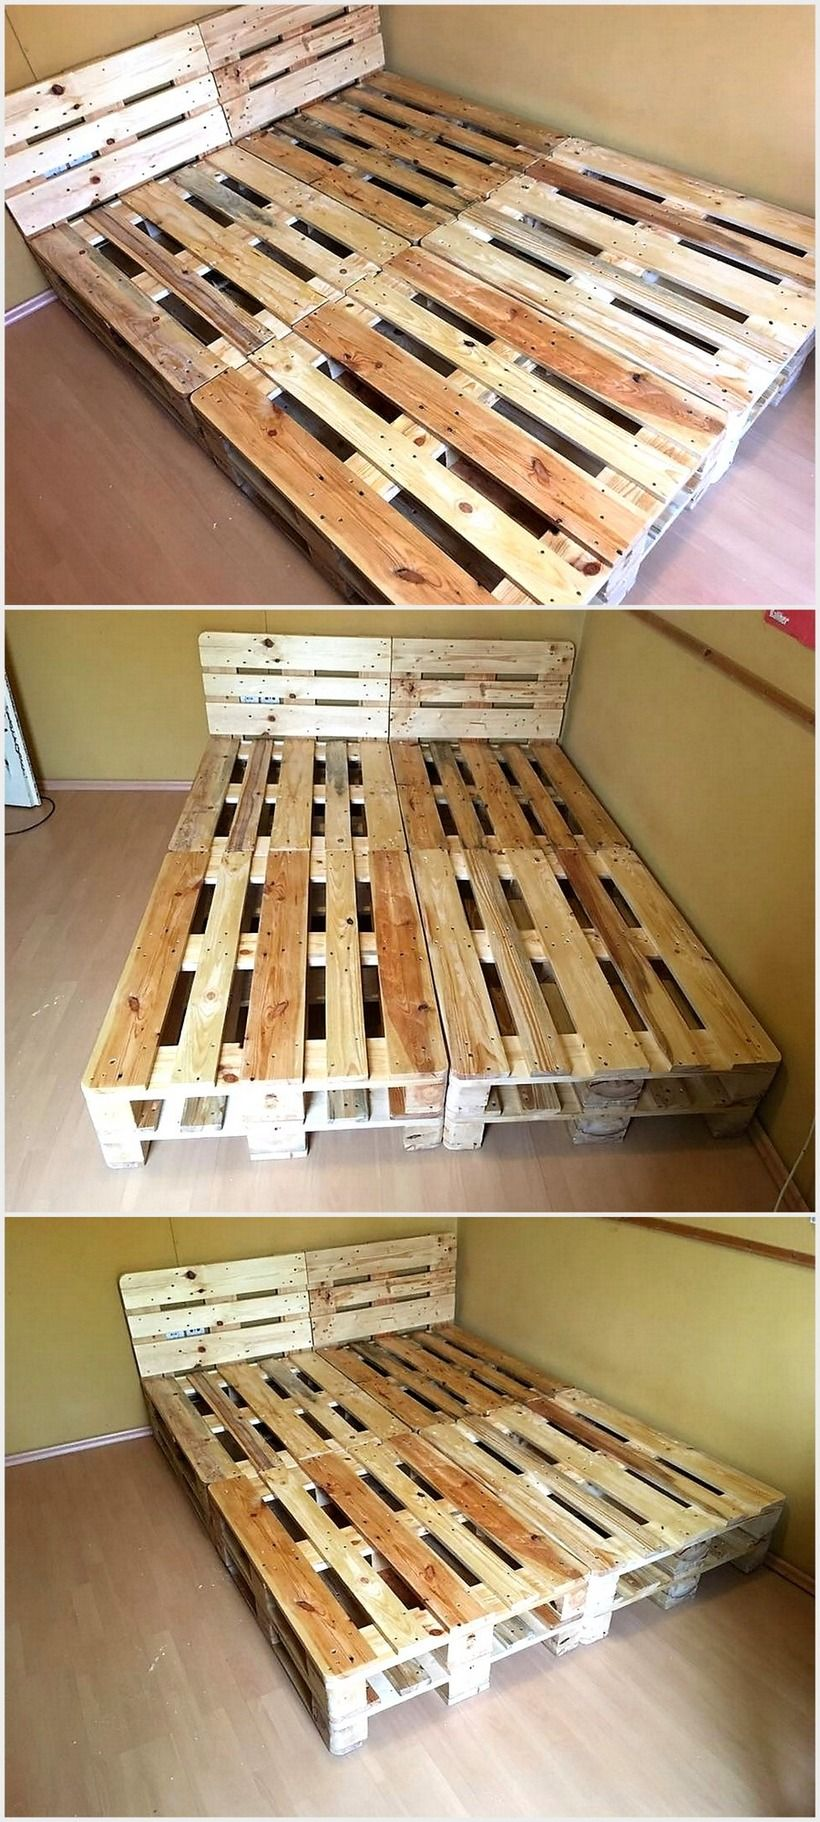 Single pallet bed frame - Cheap Home Furnishing With Wooden Pallets Wooden Pallet Bedspallet Bedframepallet